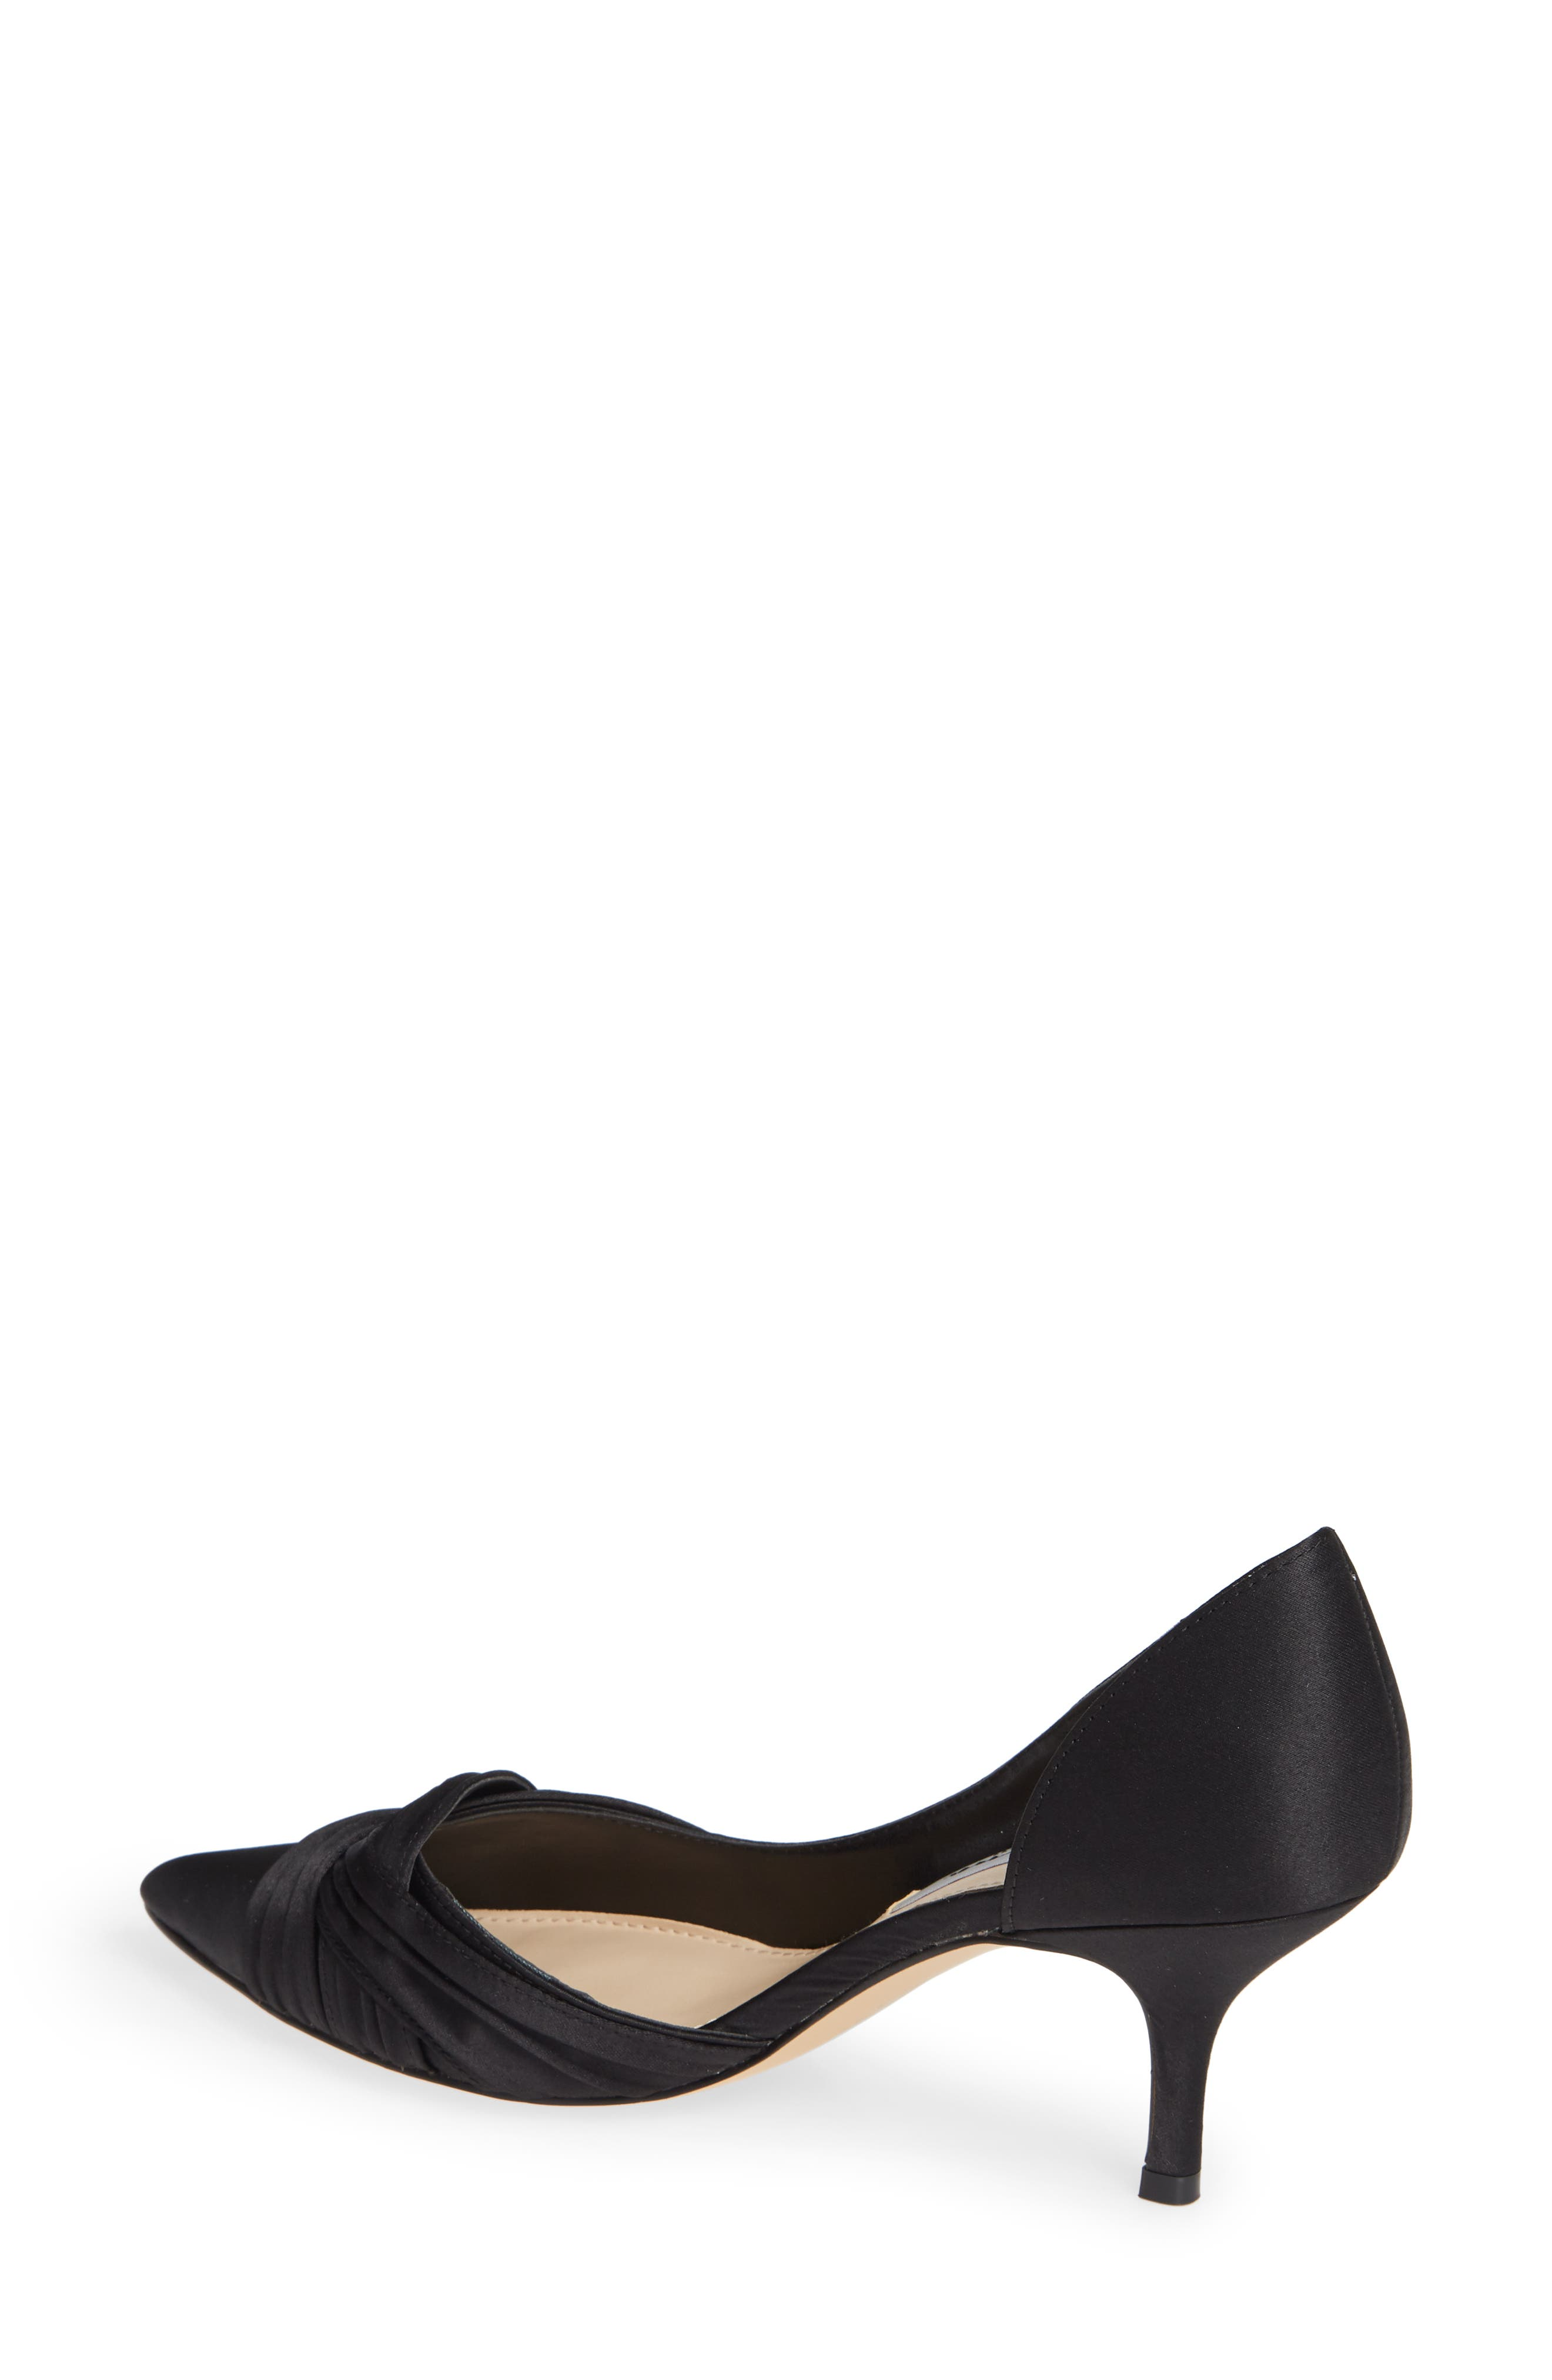 Blakely Half d'Orsay Pointy Toe Pump,                             Alternate thumbnail 2, color,                             BLACK SATIN